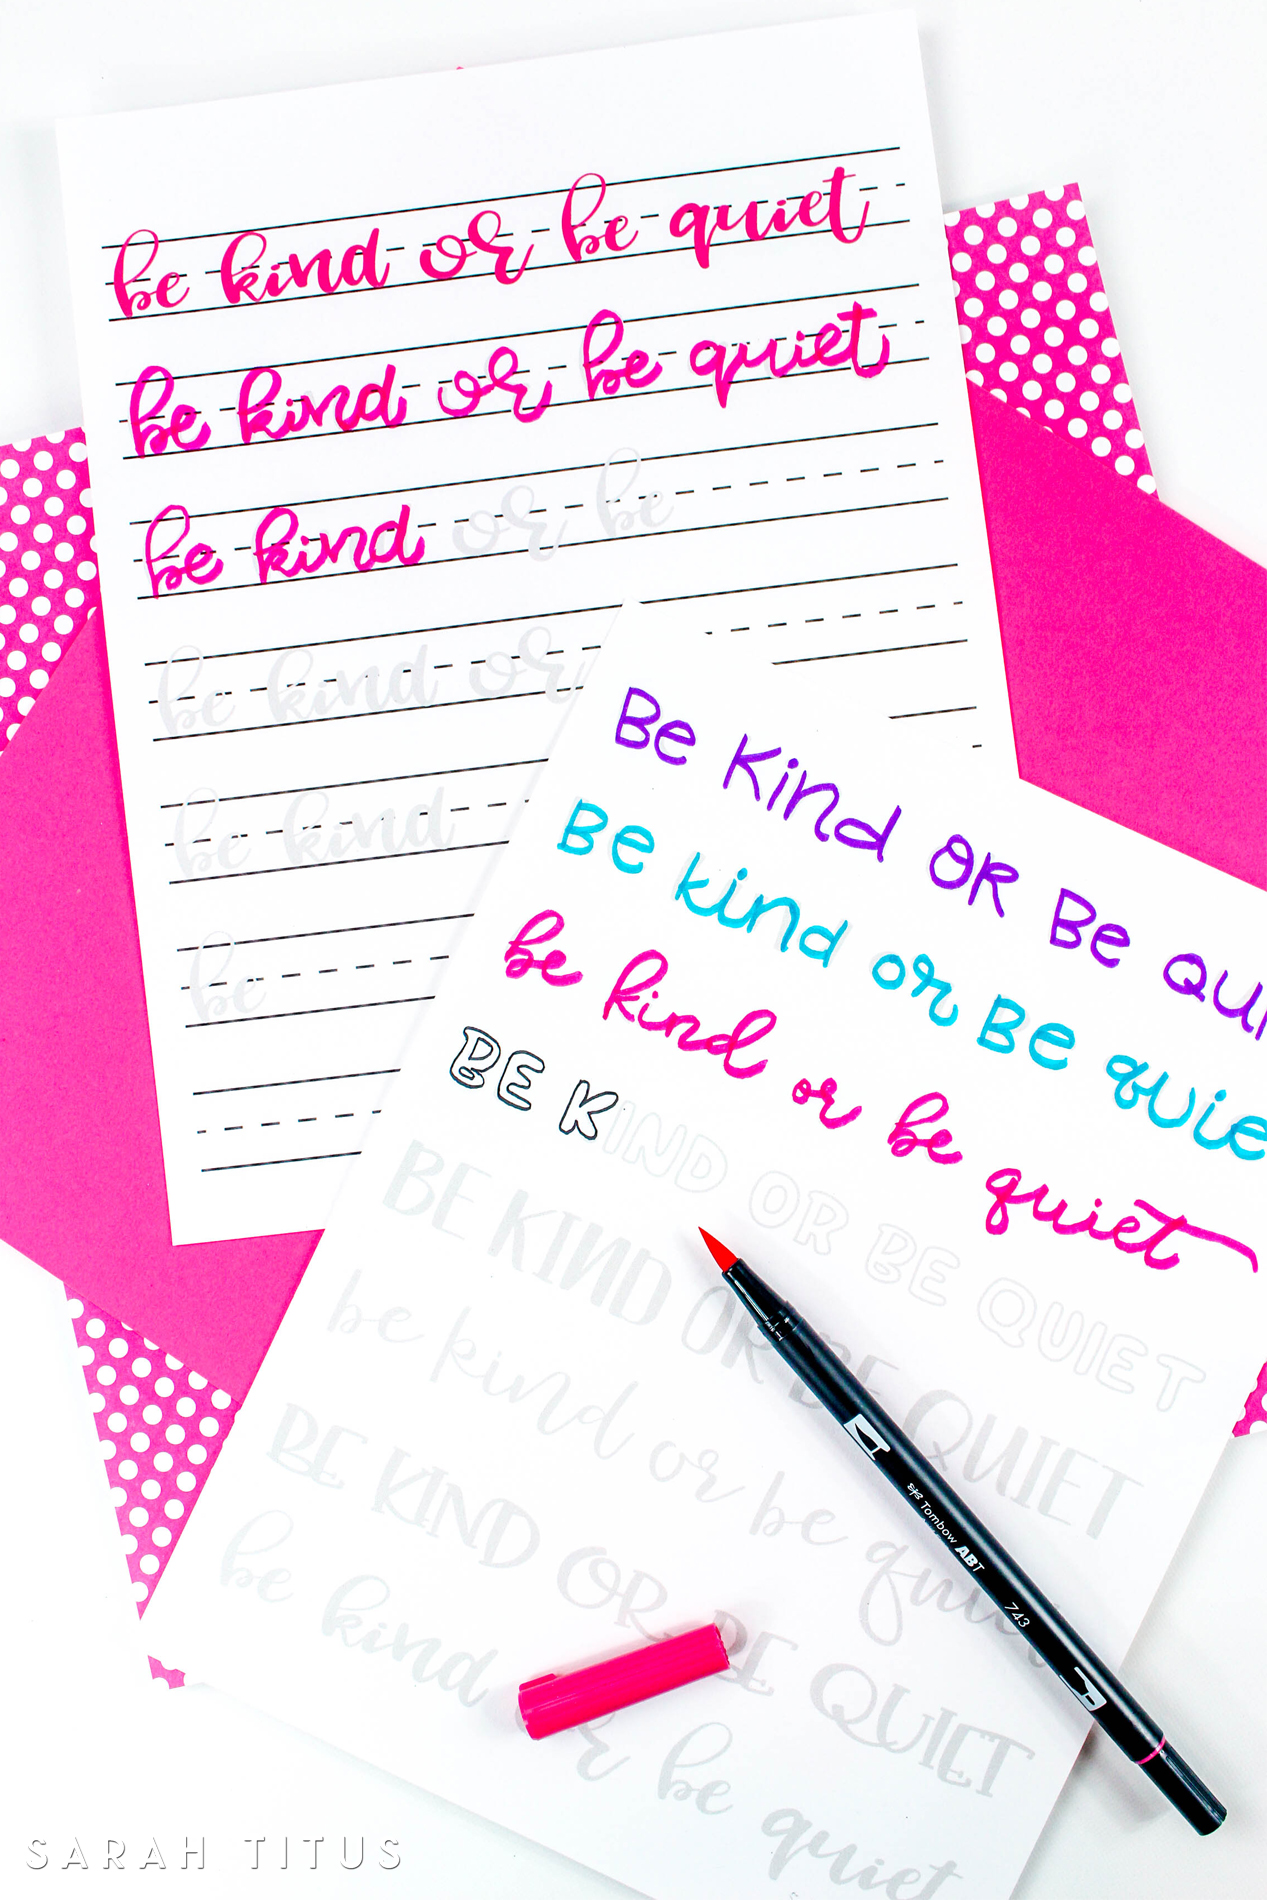 Download Be Kind or Be Quiet Hand Lettering Worksheets - Sarah Titus